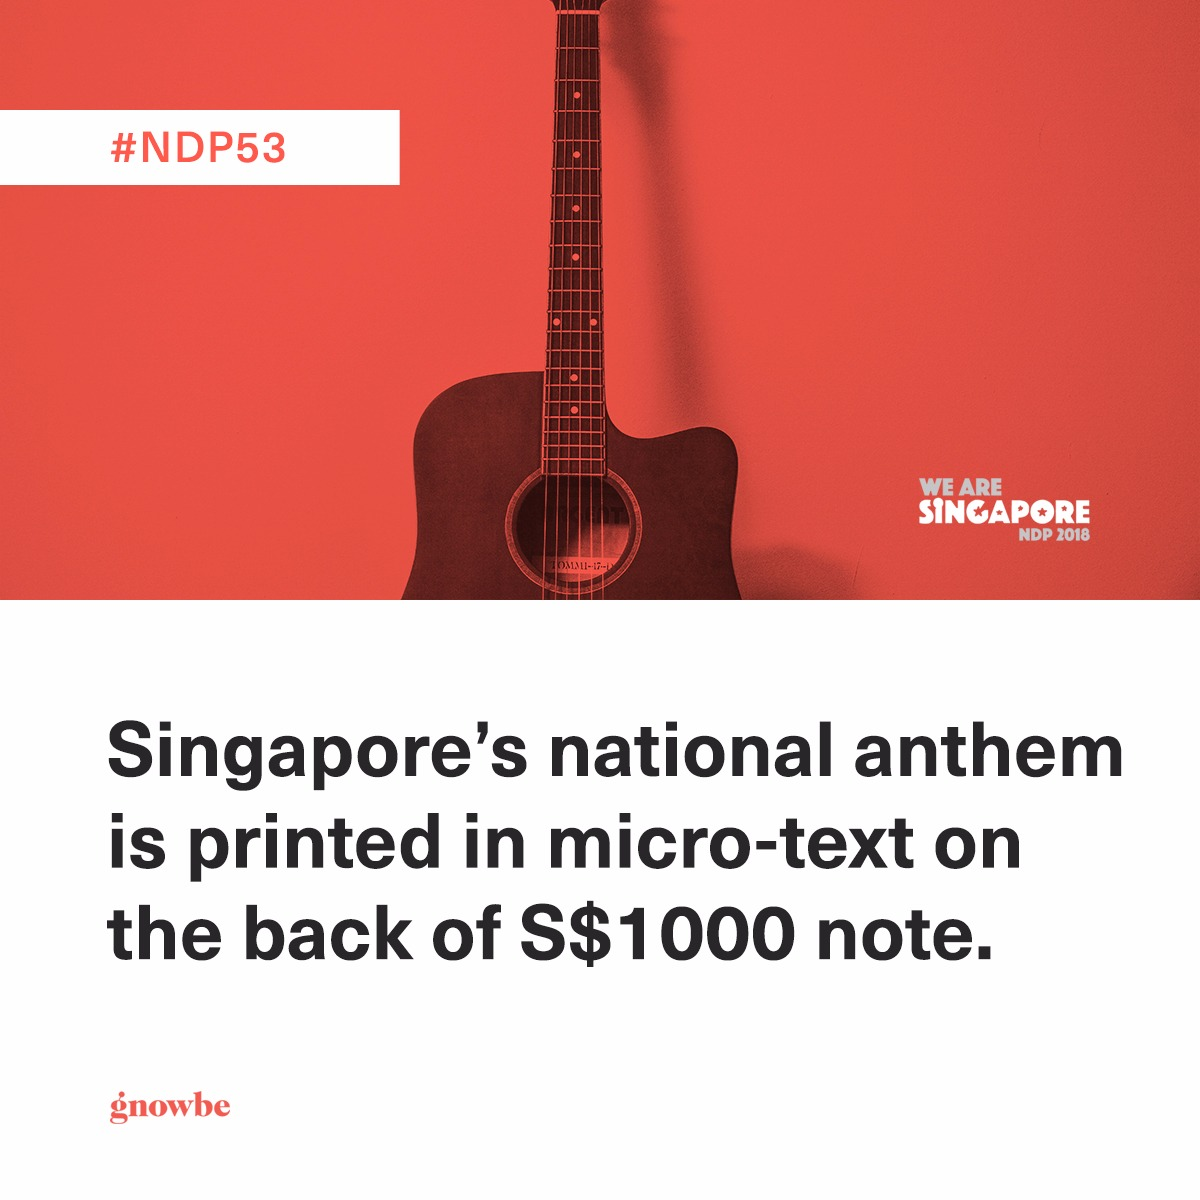 We Are Singapore Ndp 2018 Gnowbe Learn